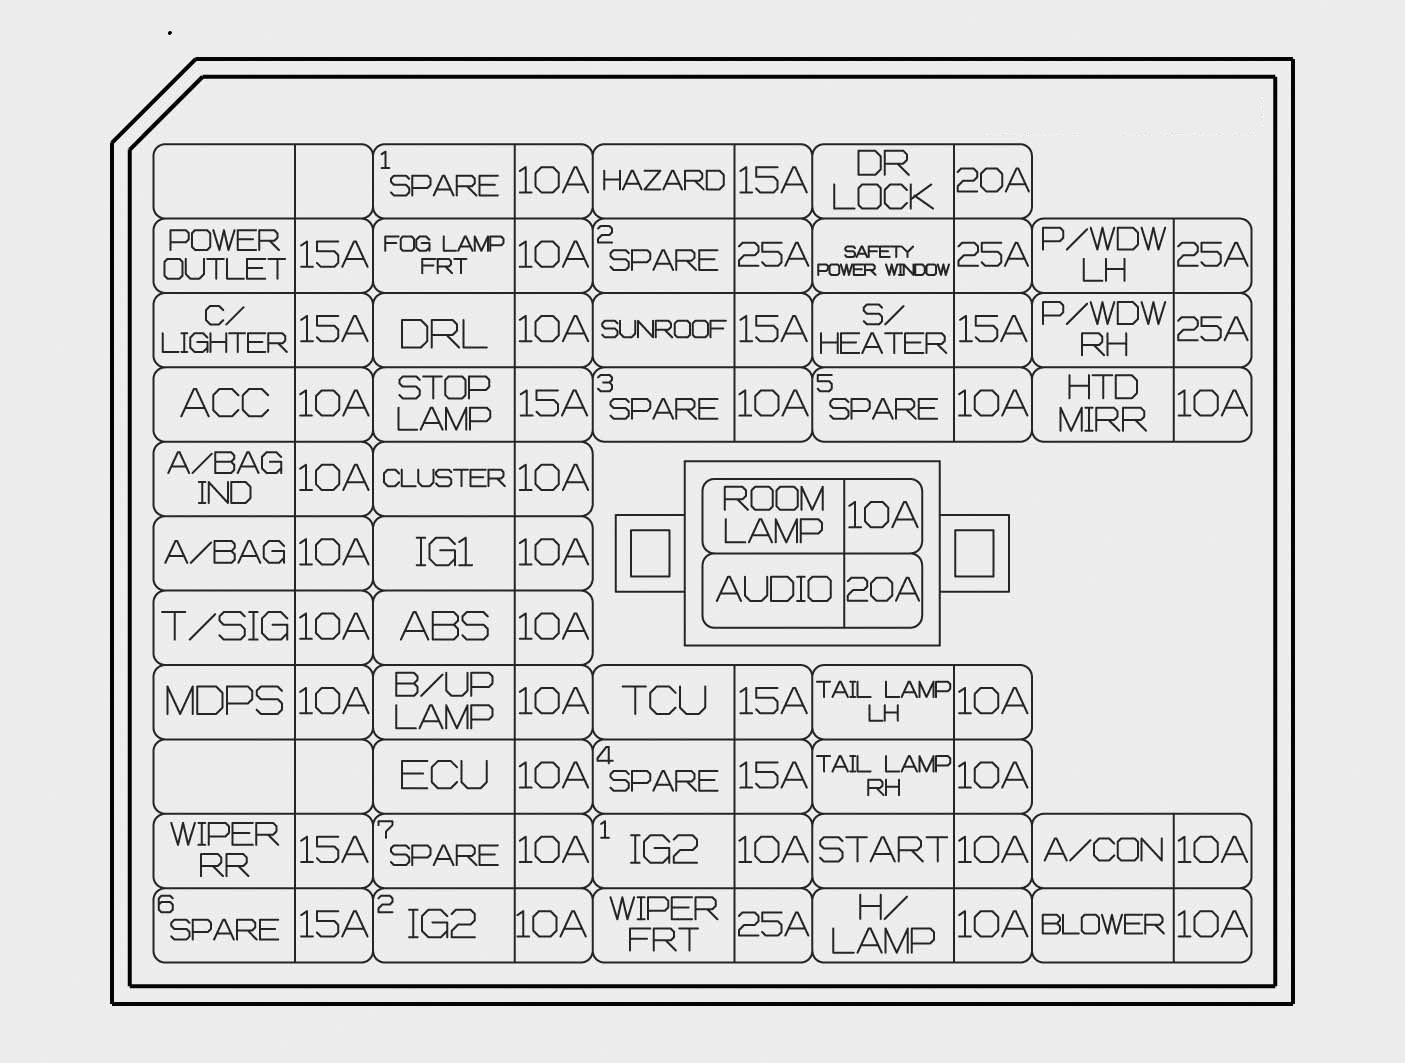 Hyundai Sonata (2015) – fuse box diagram - Carknowledge.infoCarknowledge.info